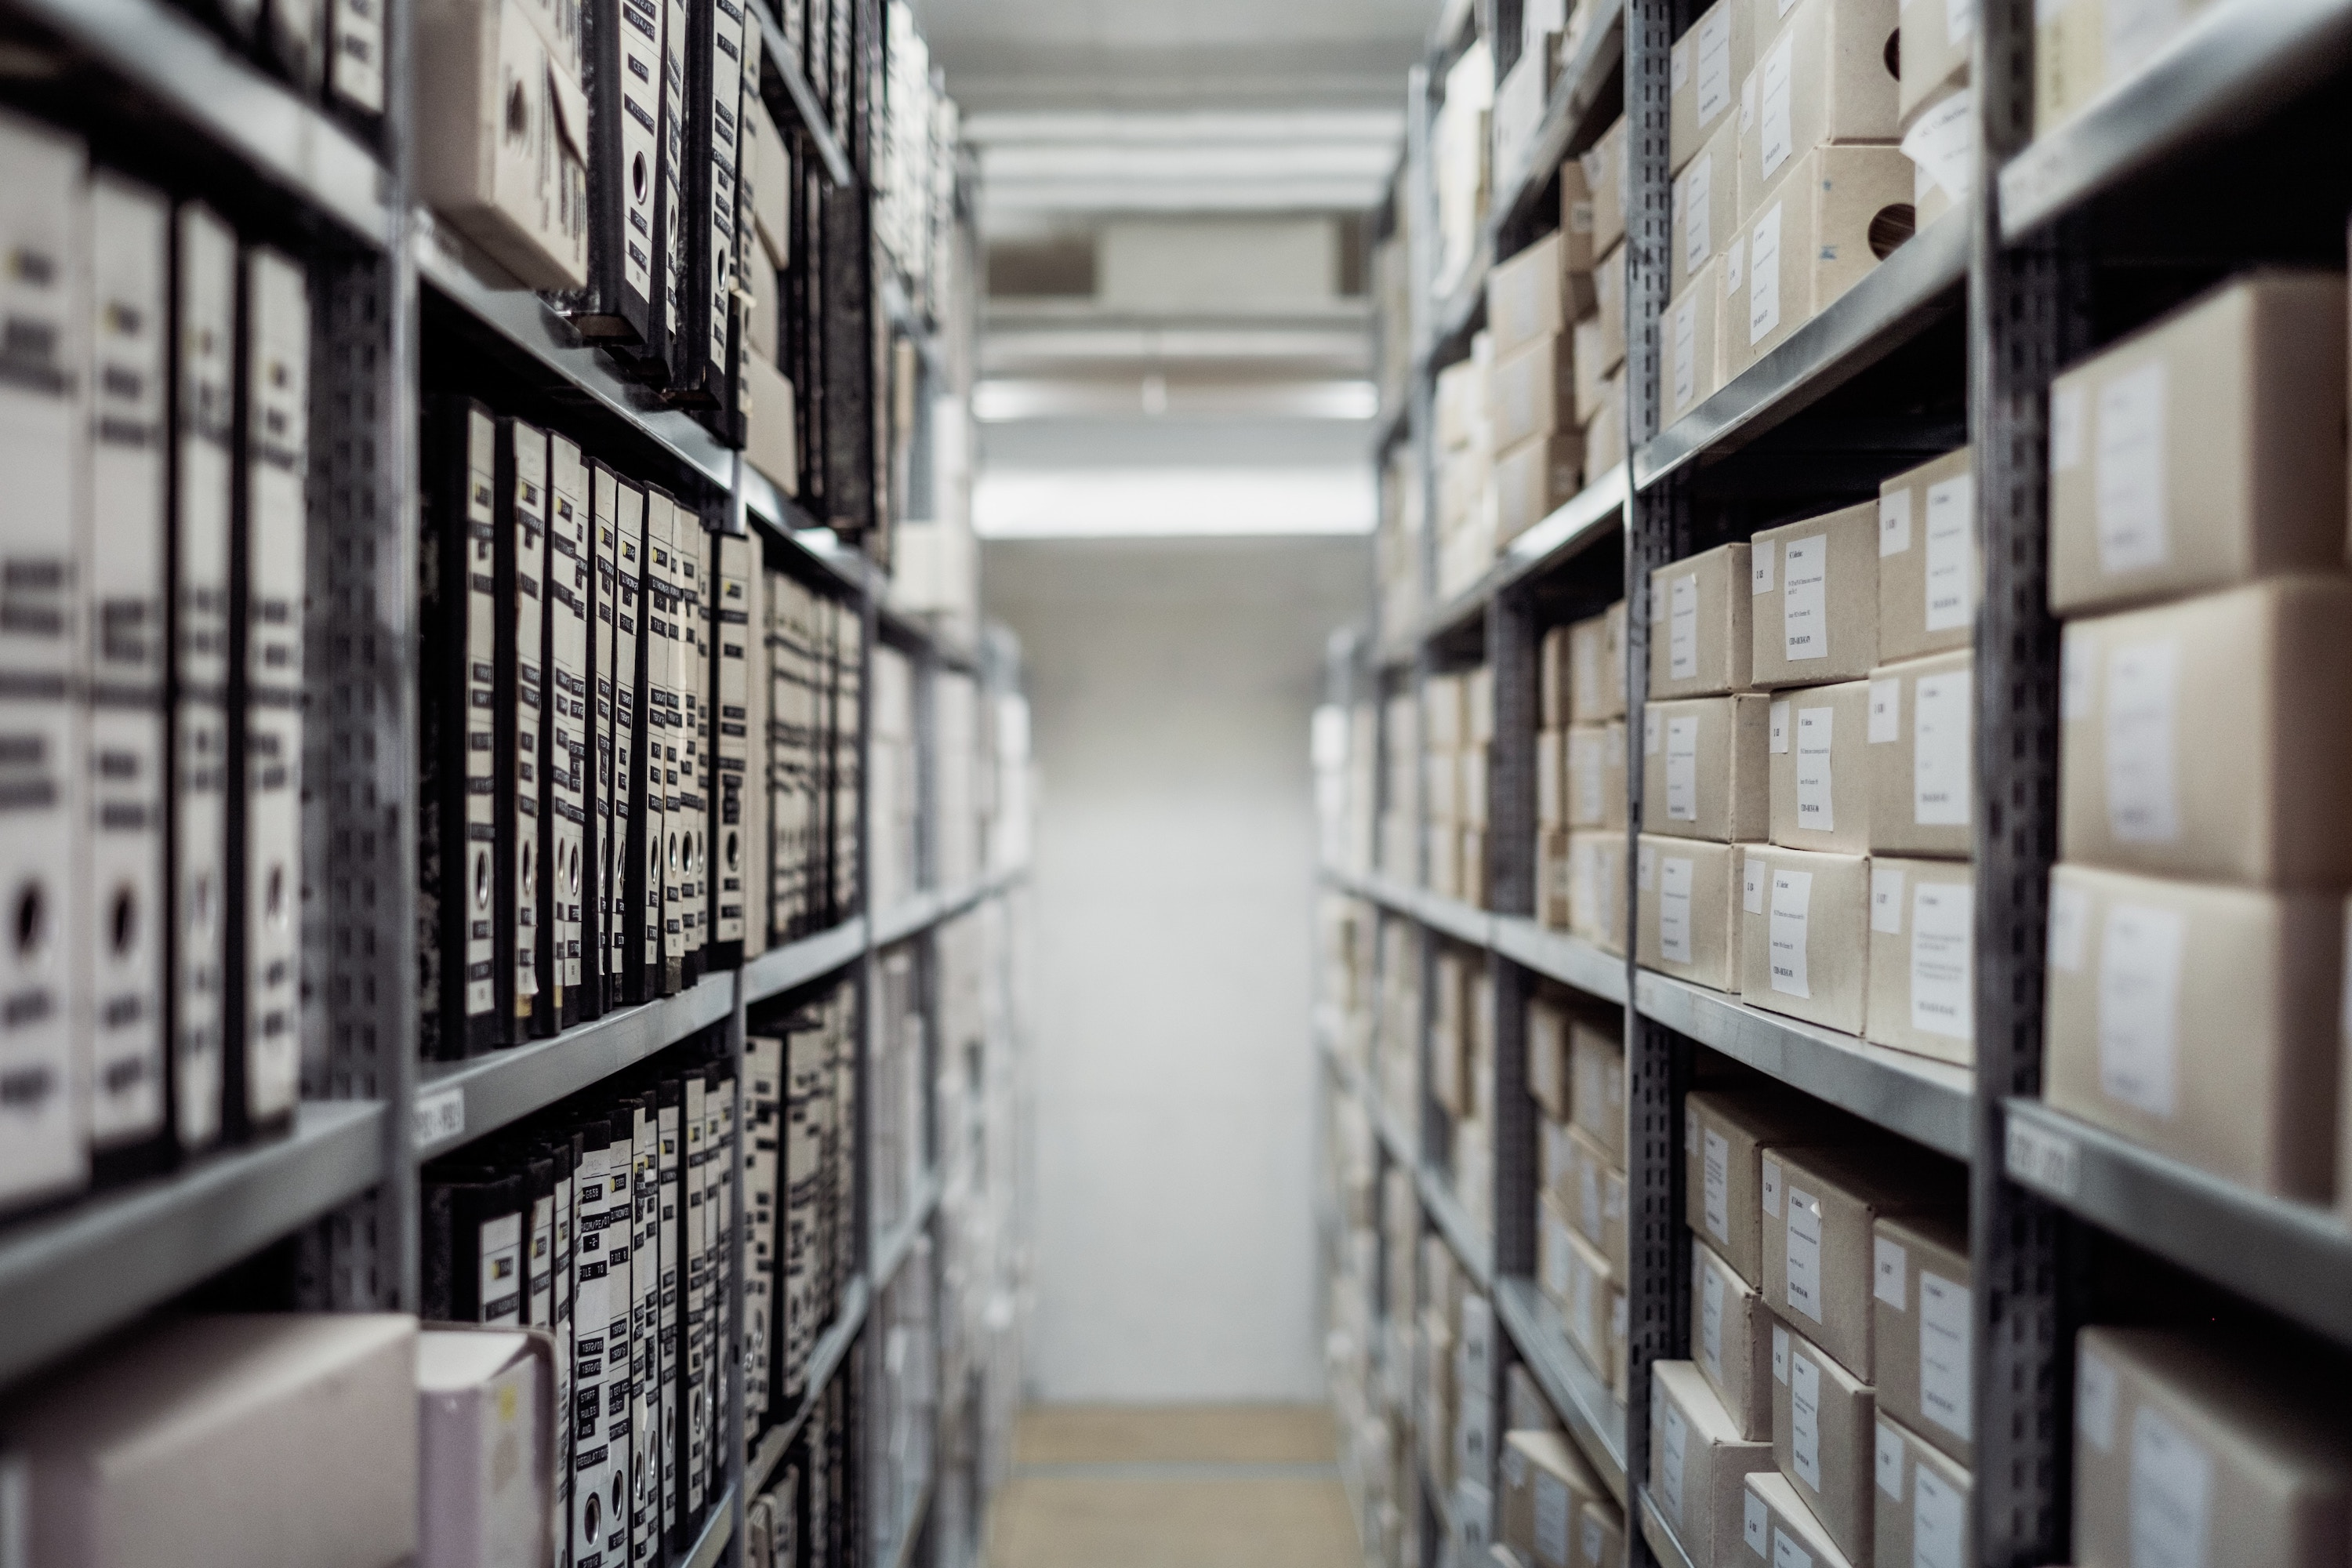 Inventory management and order fulfillment